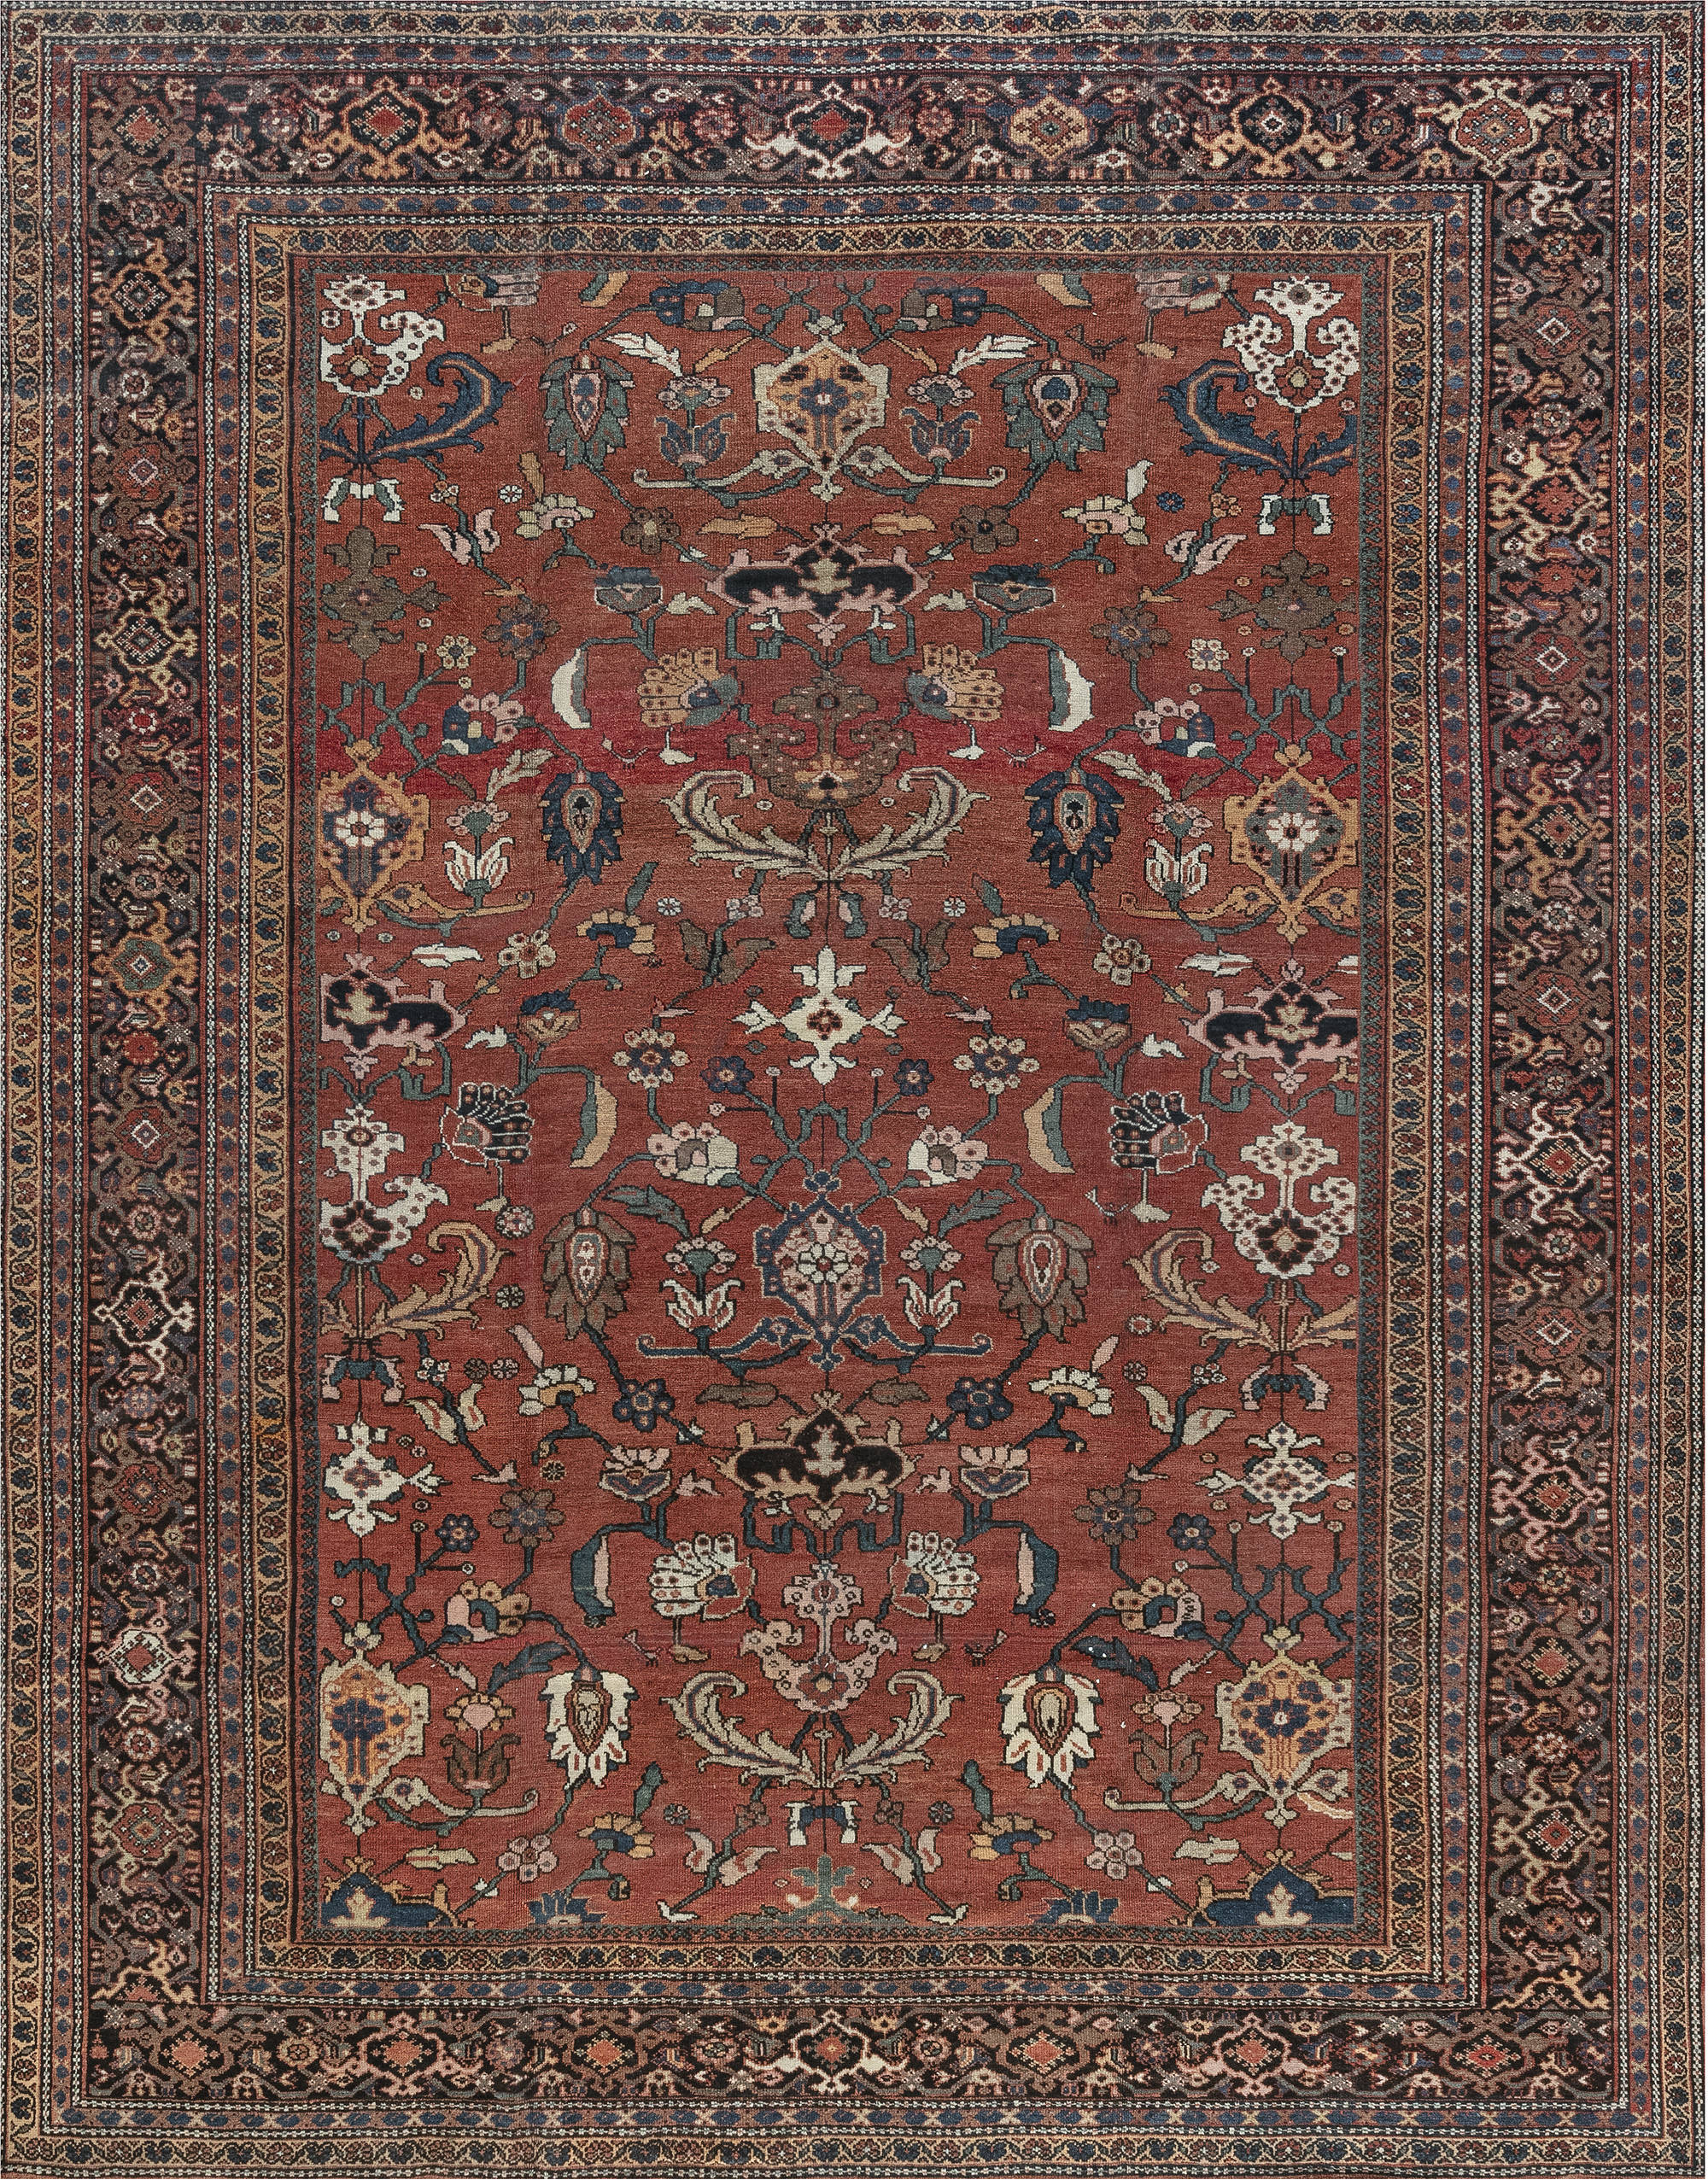 19th Century Persian Sultanabad Brick Red Handwoven Wool Rug BB7268